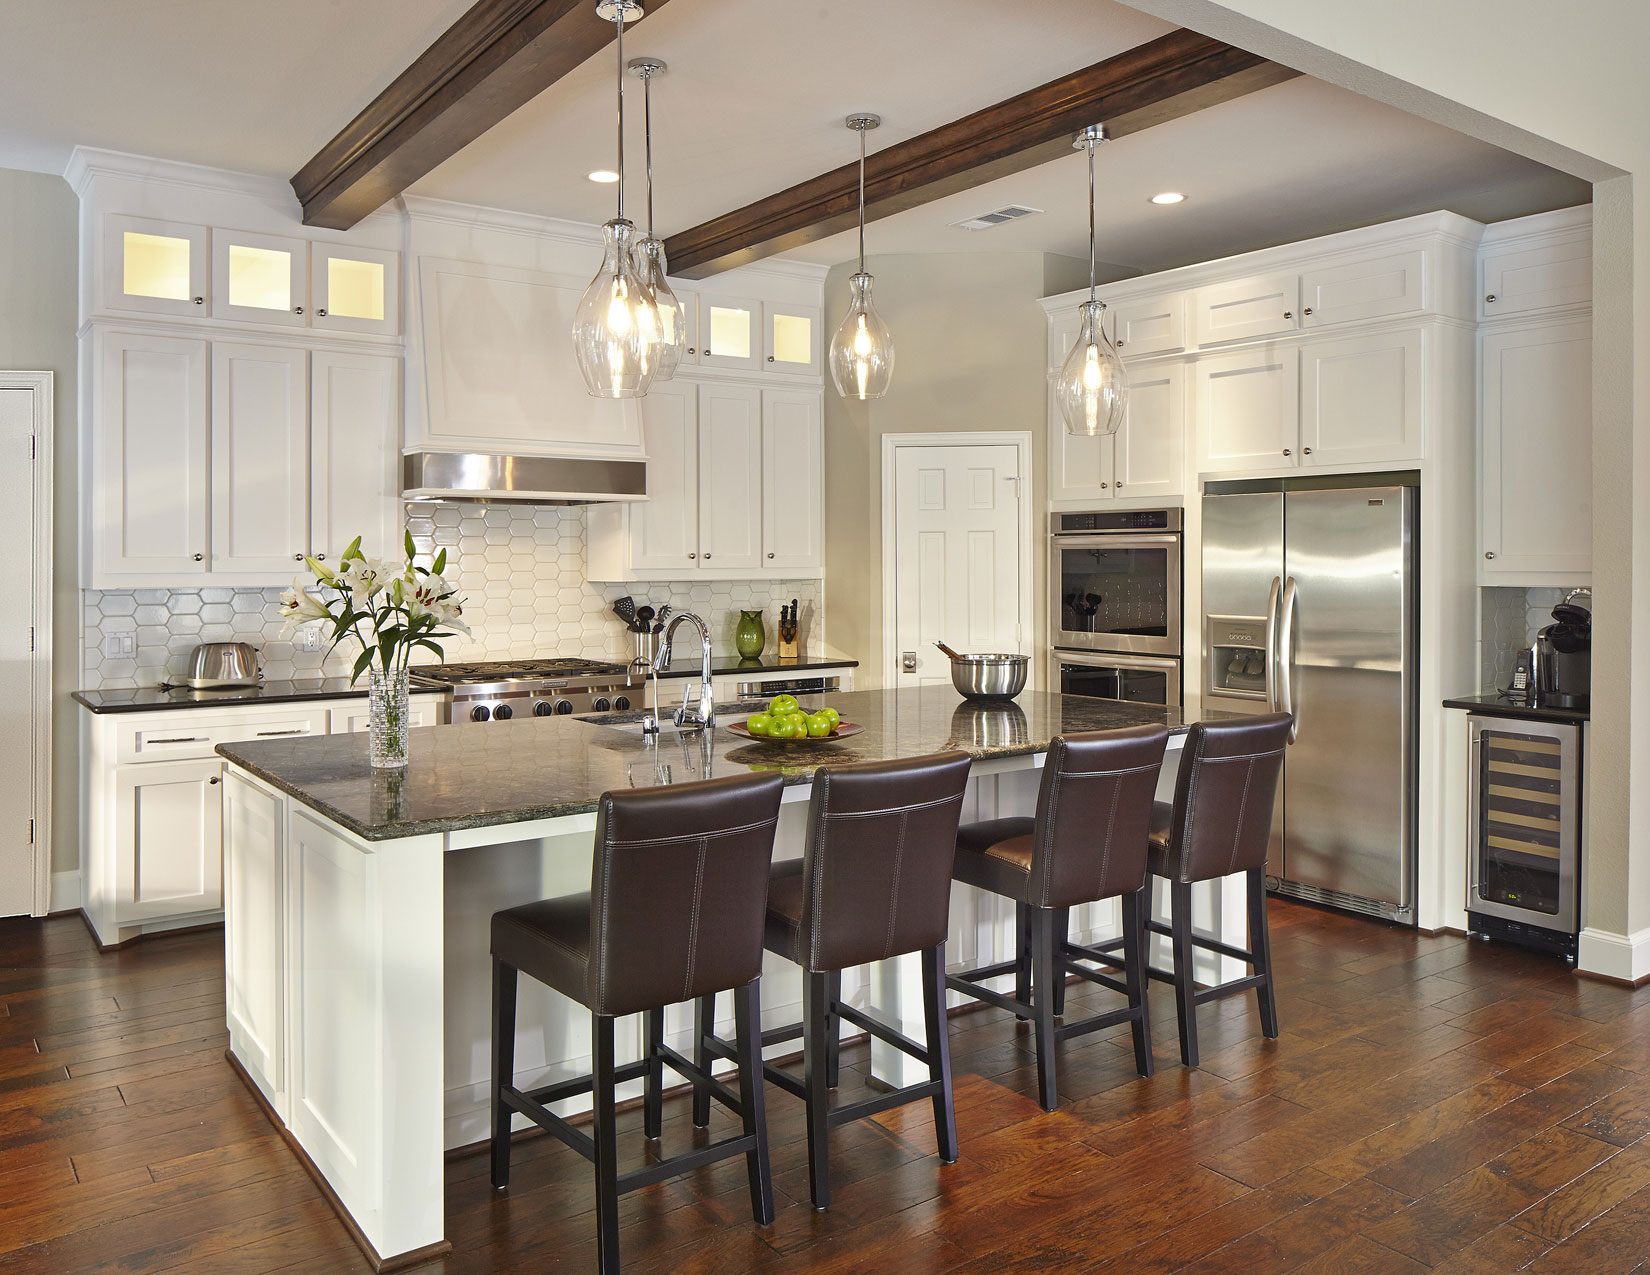 Kitchen Design Courses Near Me Project Stylish Drab To Fab Kitchen Makeover In Dallas